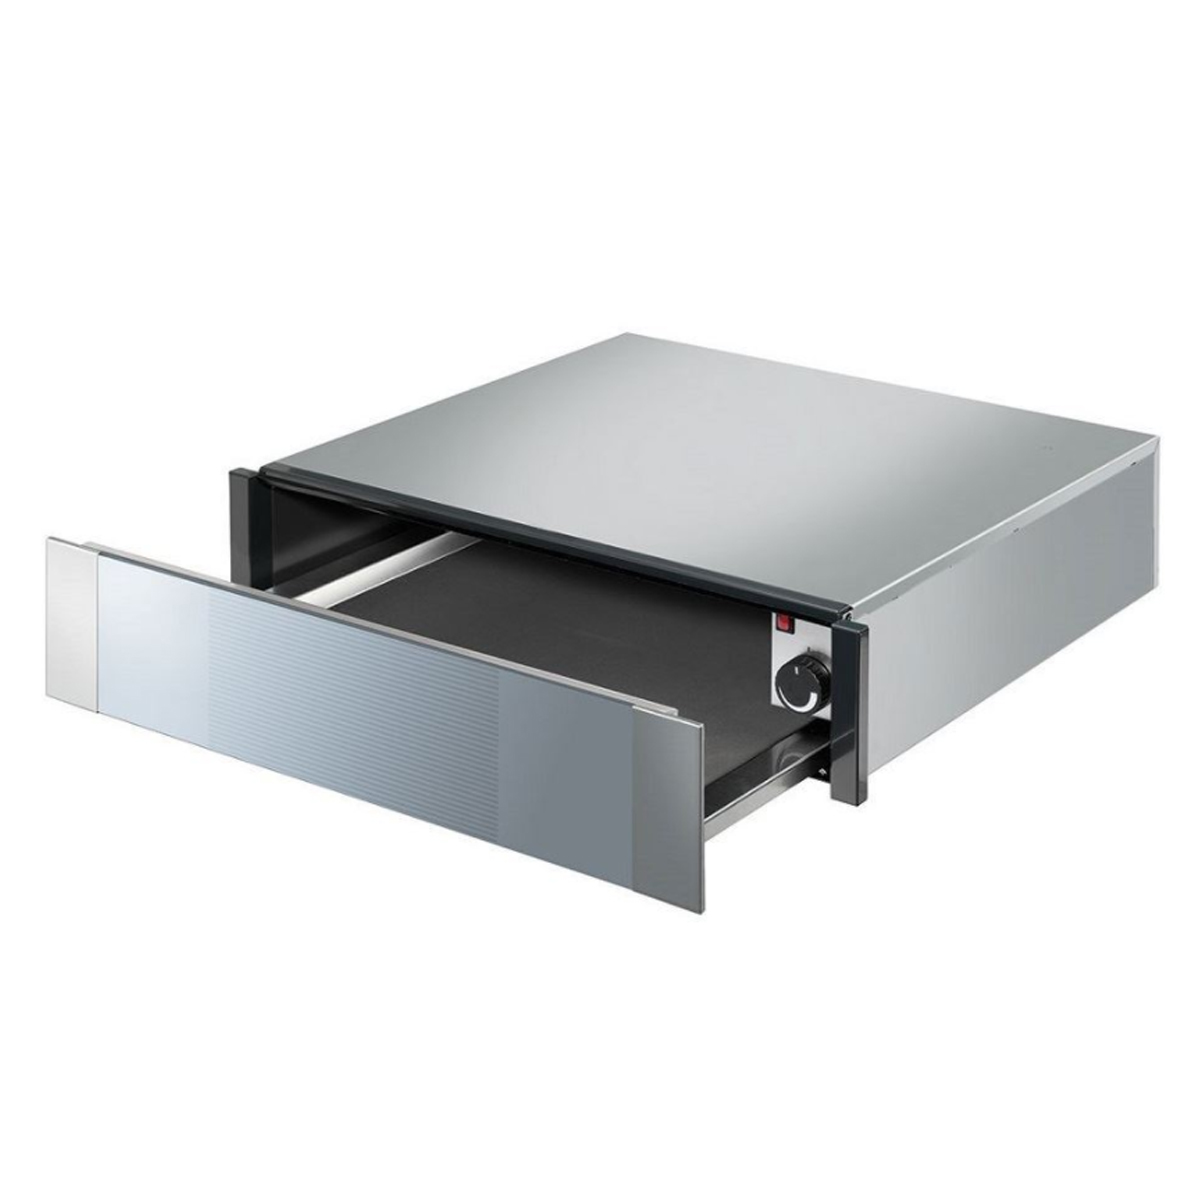 Smeg CTPA1015 15cm Warming Drawer